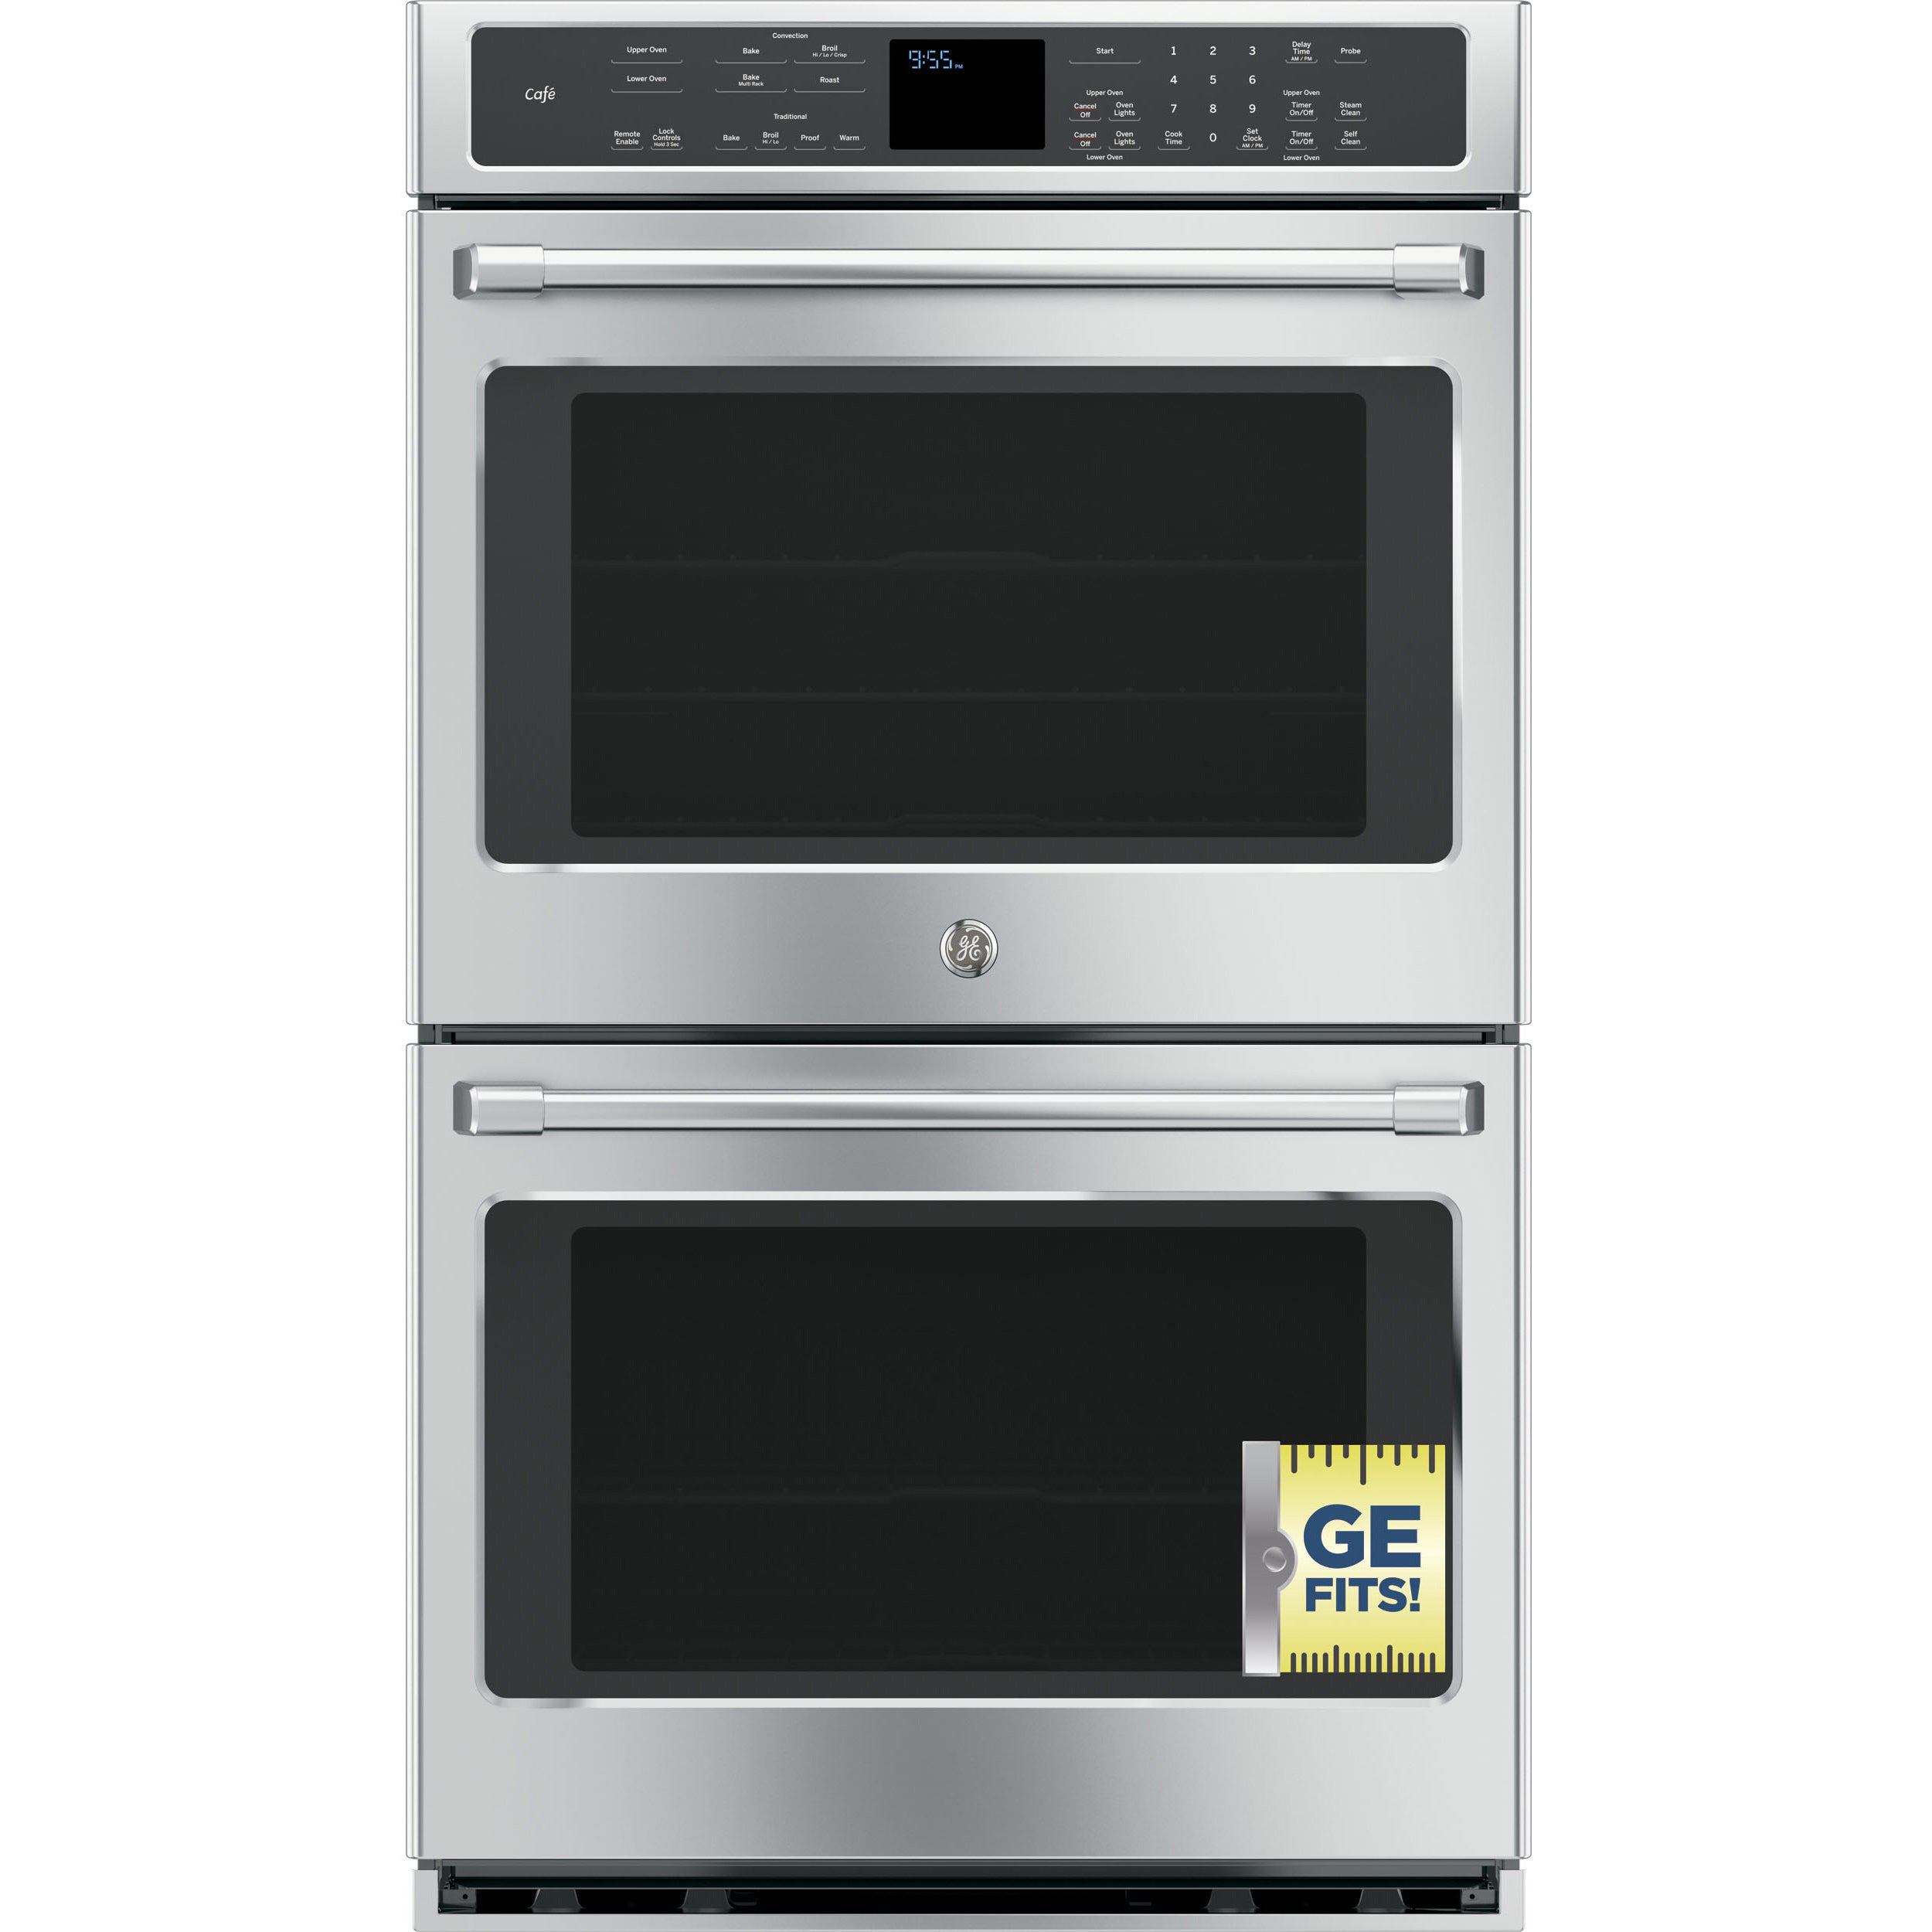 Ge Cafe Series Ct9550shss Stainless Steel 30 Inch Double Wall Oven Free Shipping Today 10031546